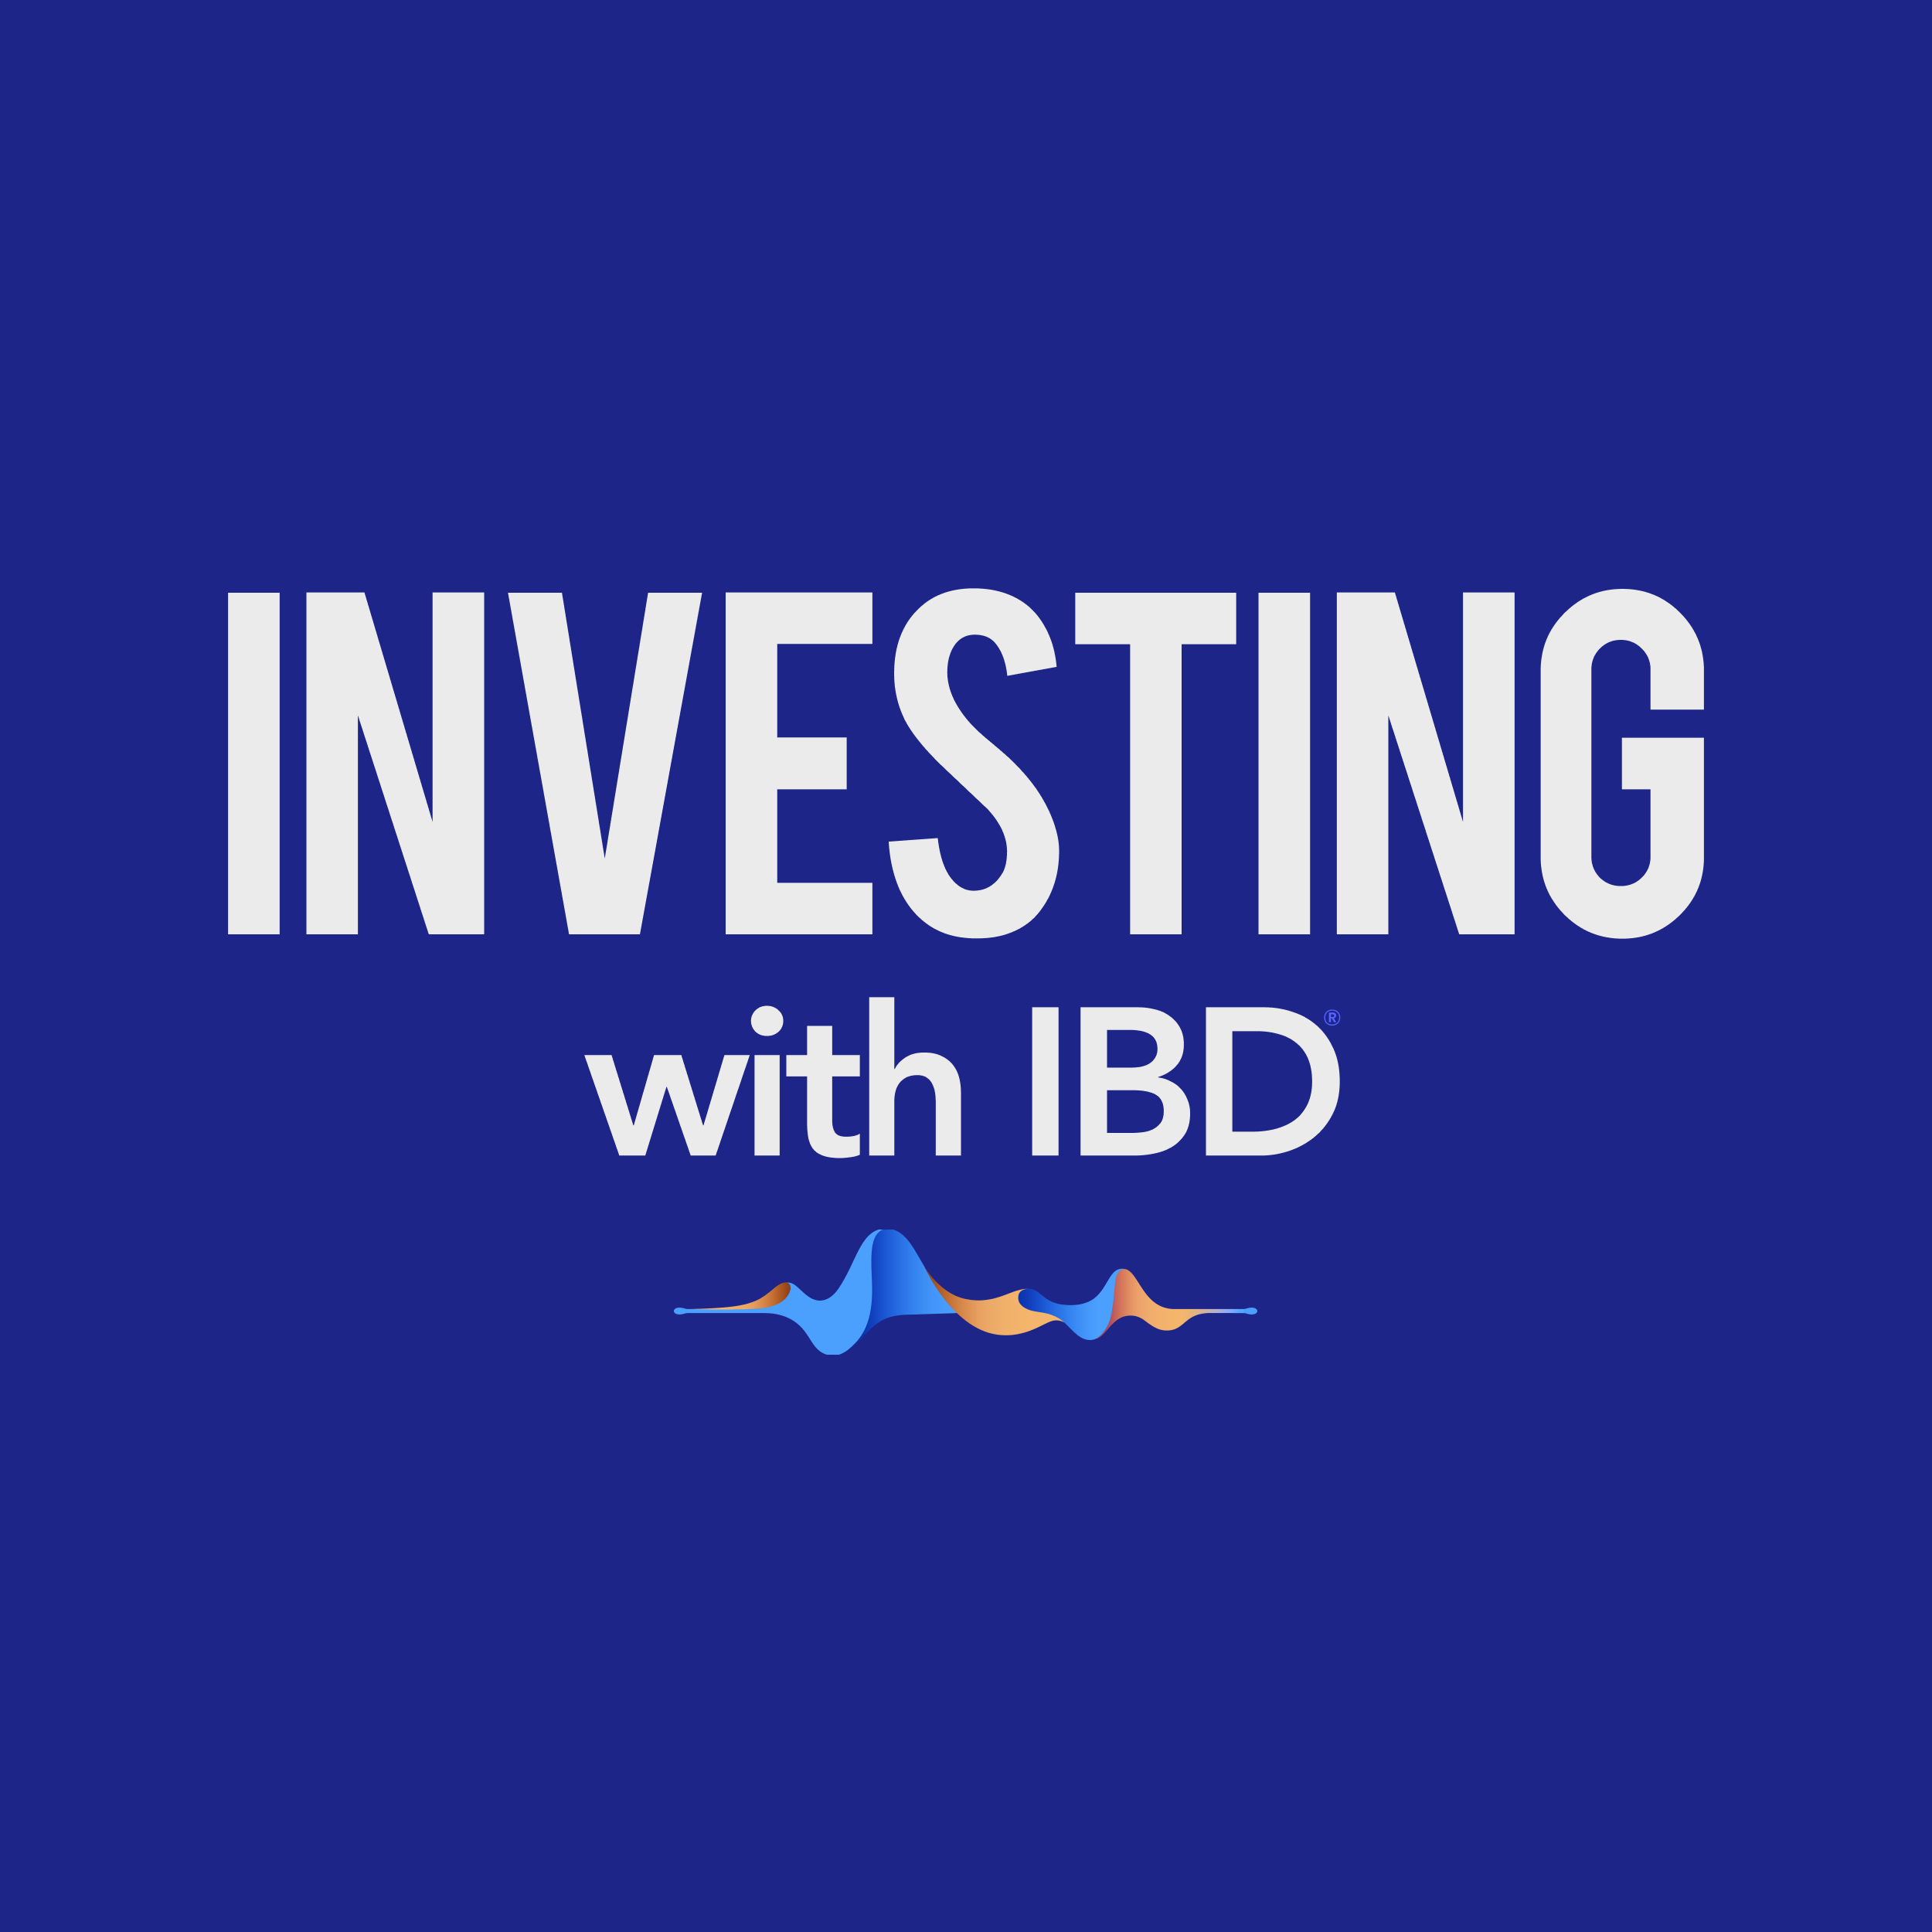 Investing with IBD